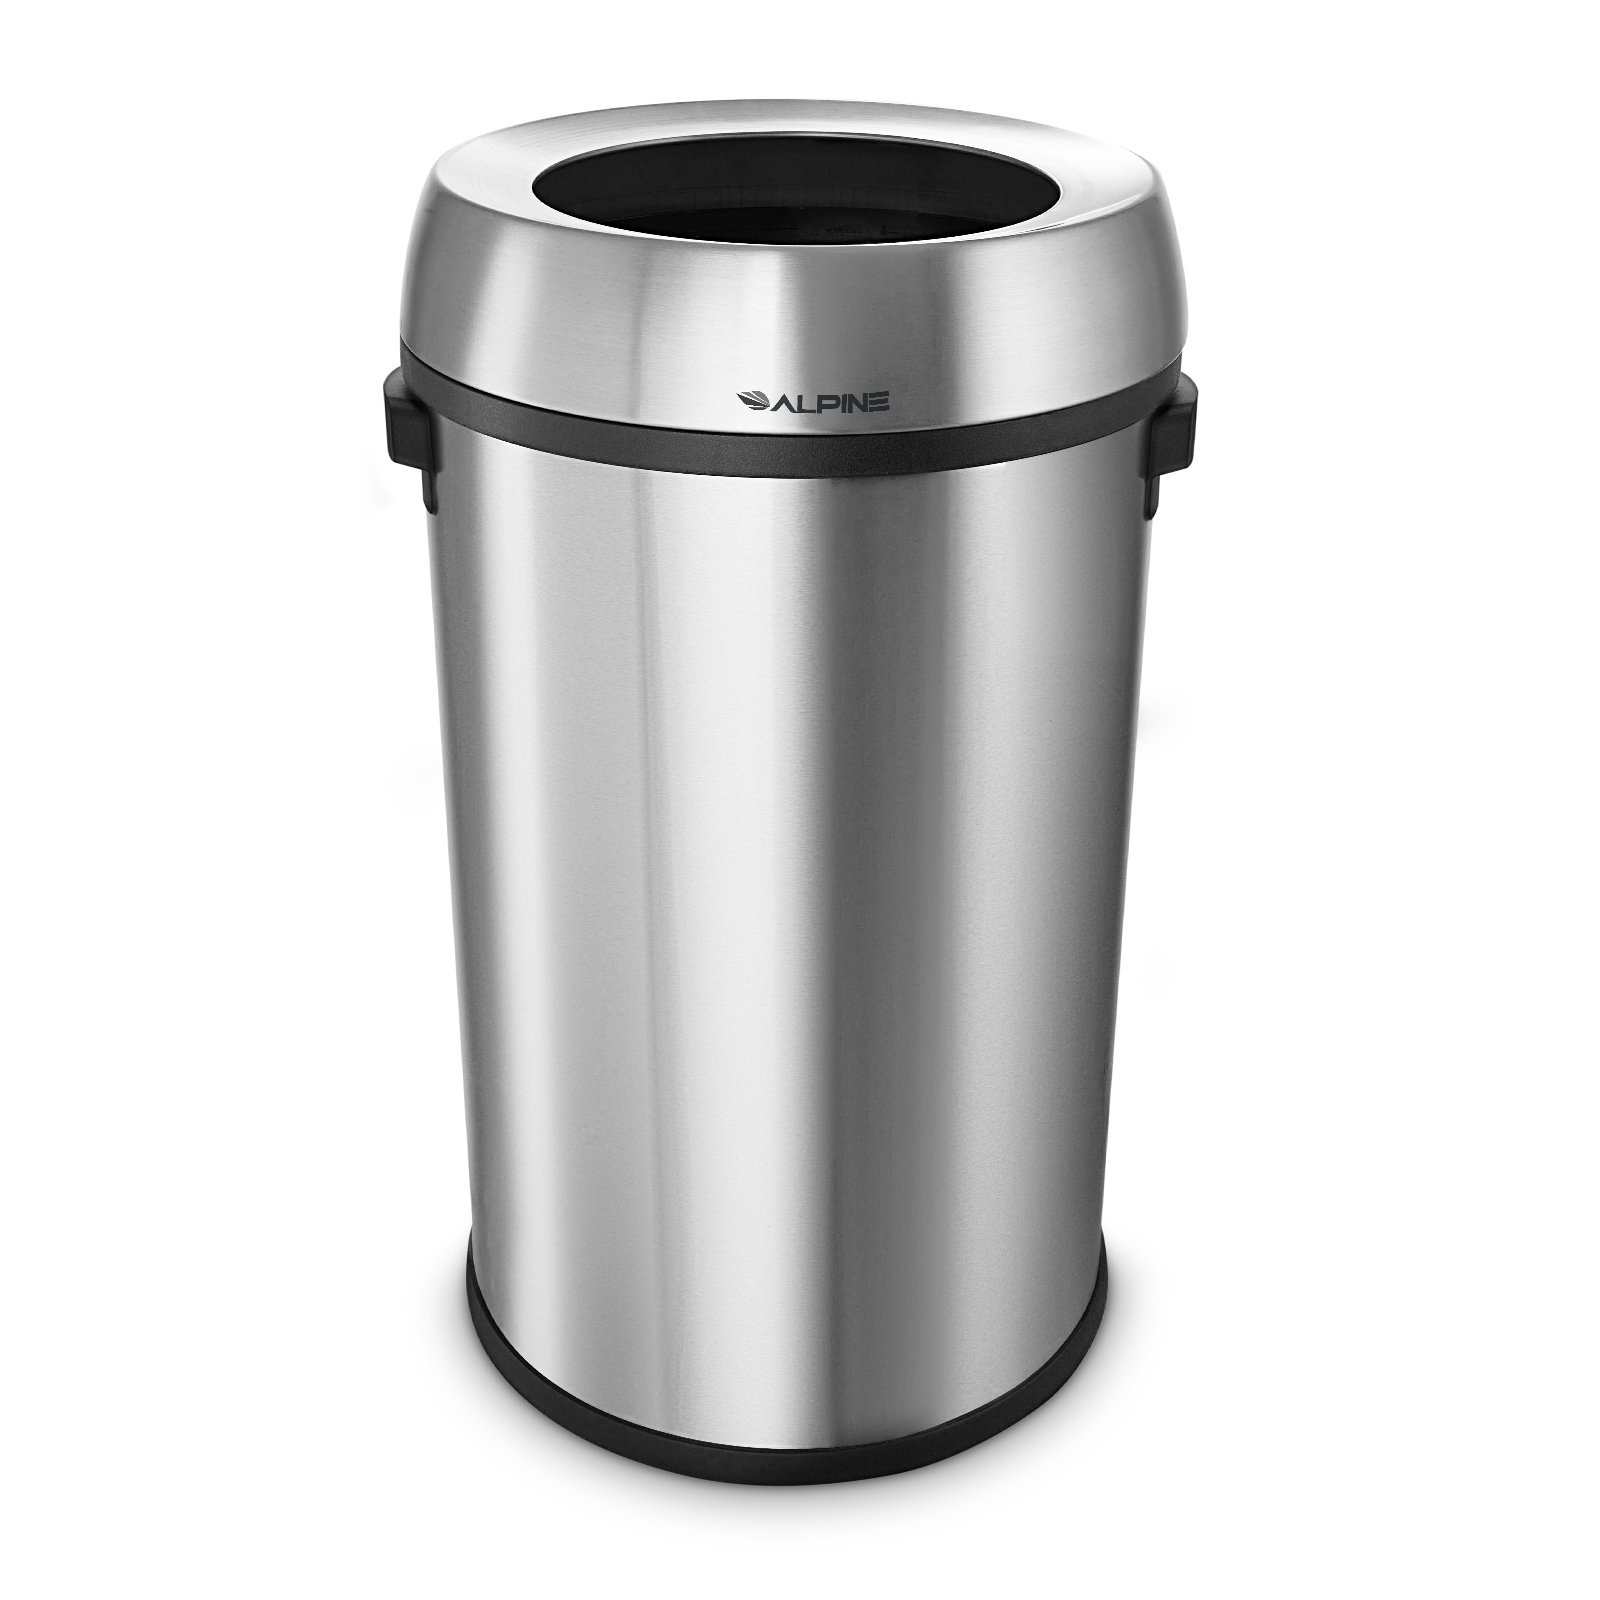 Alpine Industries Stainless Steel Open Top Trash Can, (17 Gallon, Silver)